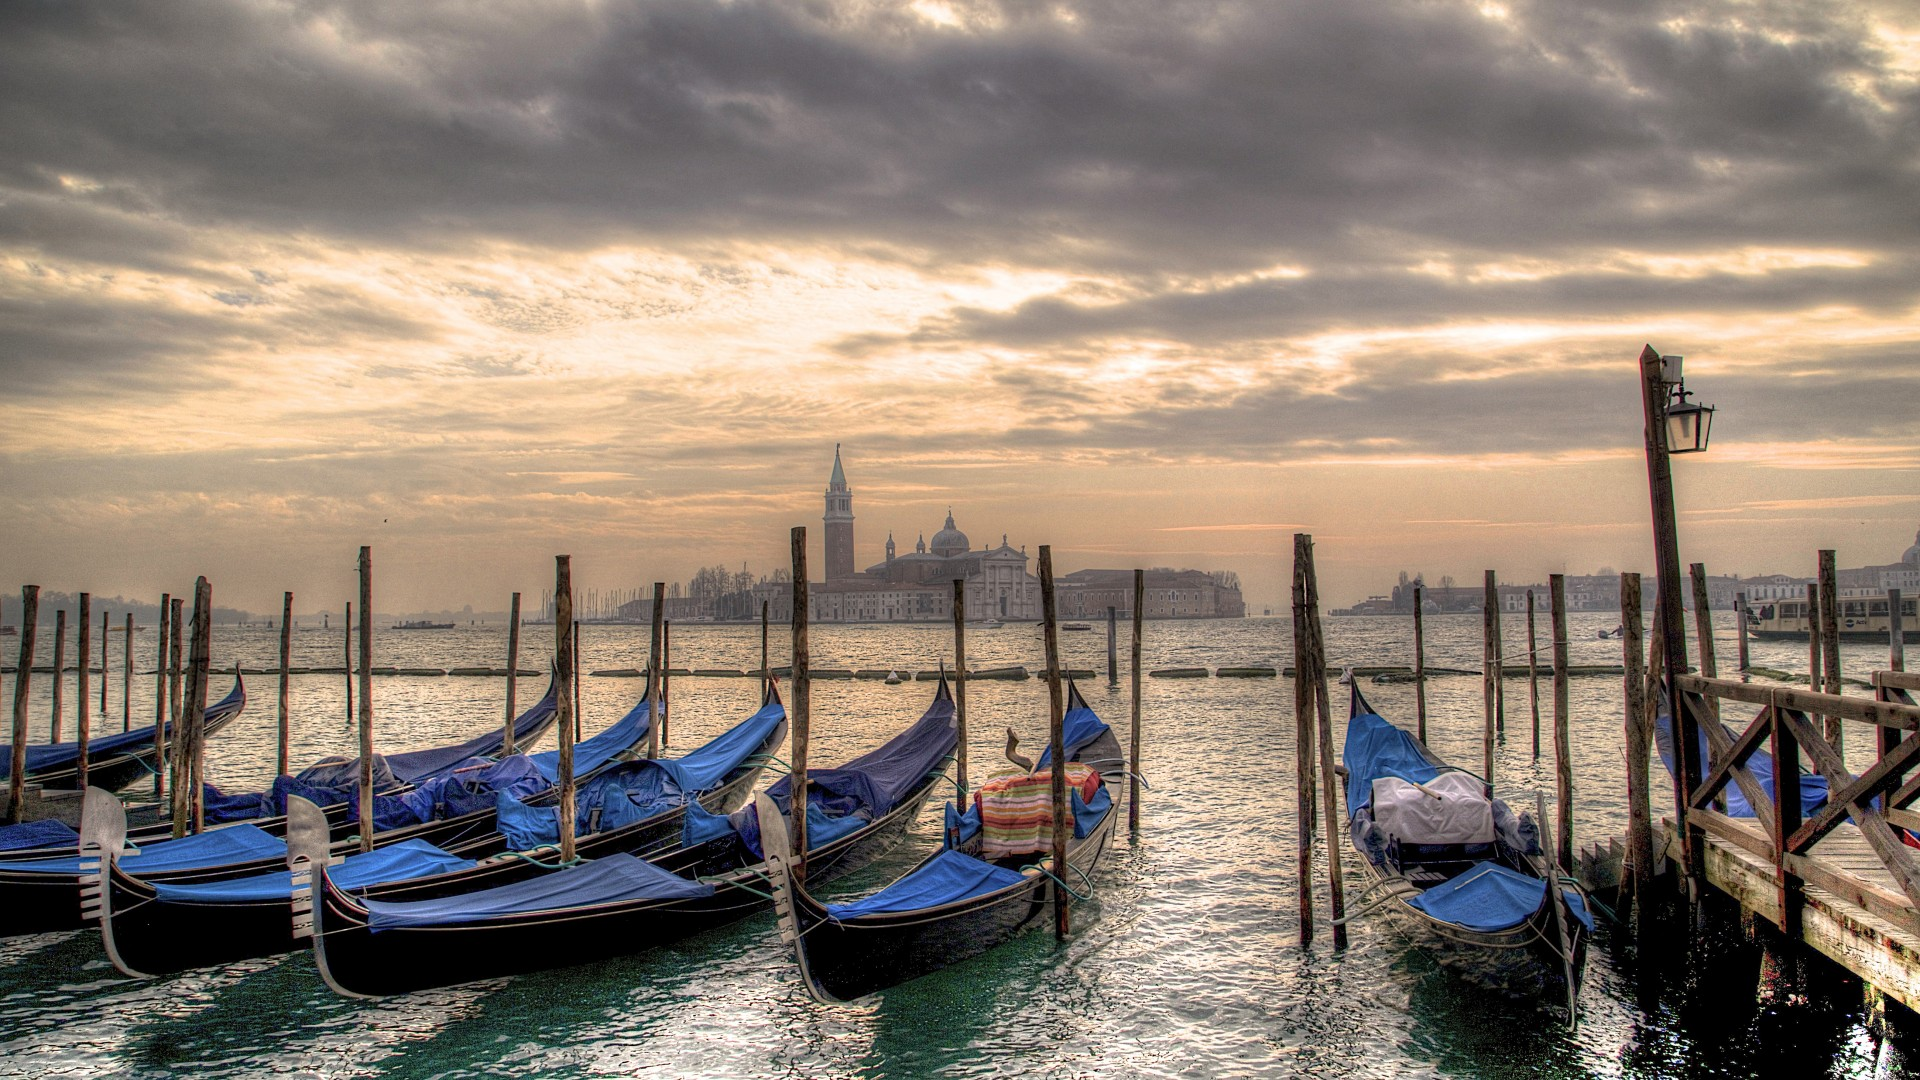 Sunset-in-Venice-looking-across-to-San-Giorgio-from-San-Marco-1920x1080.jpg